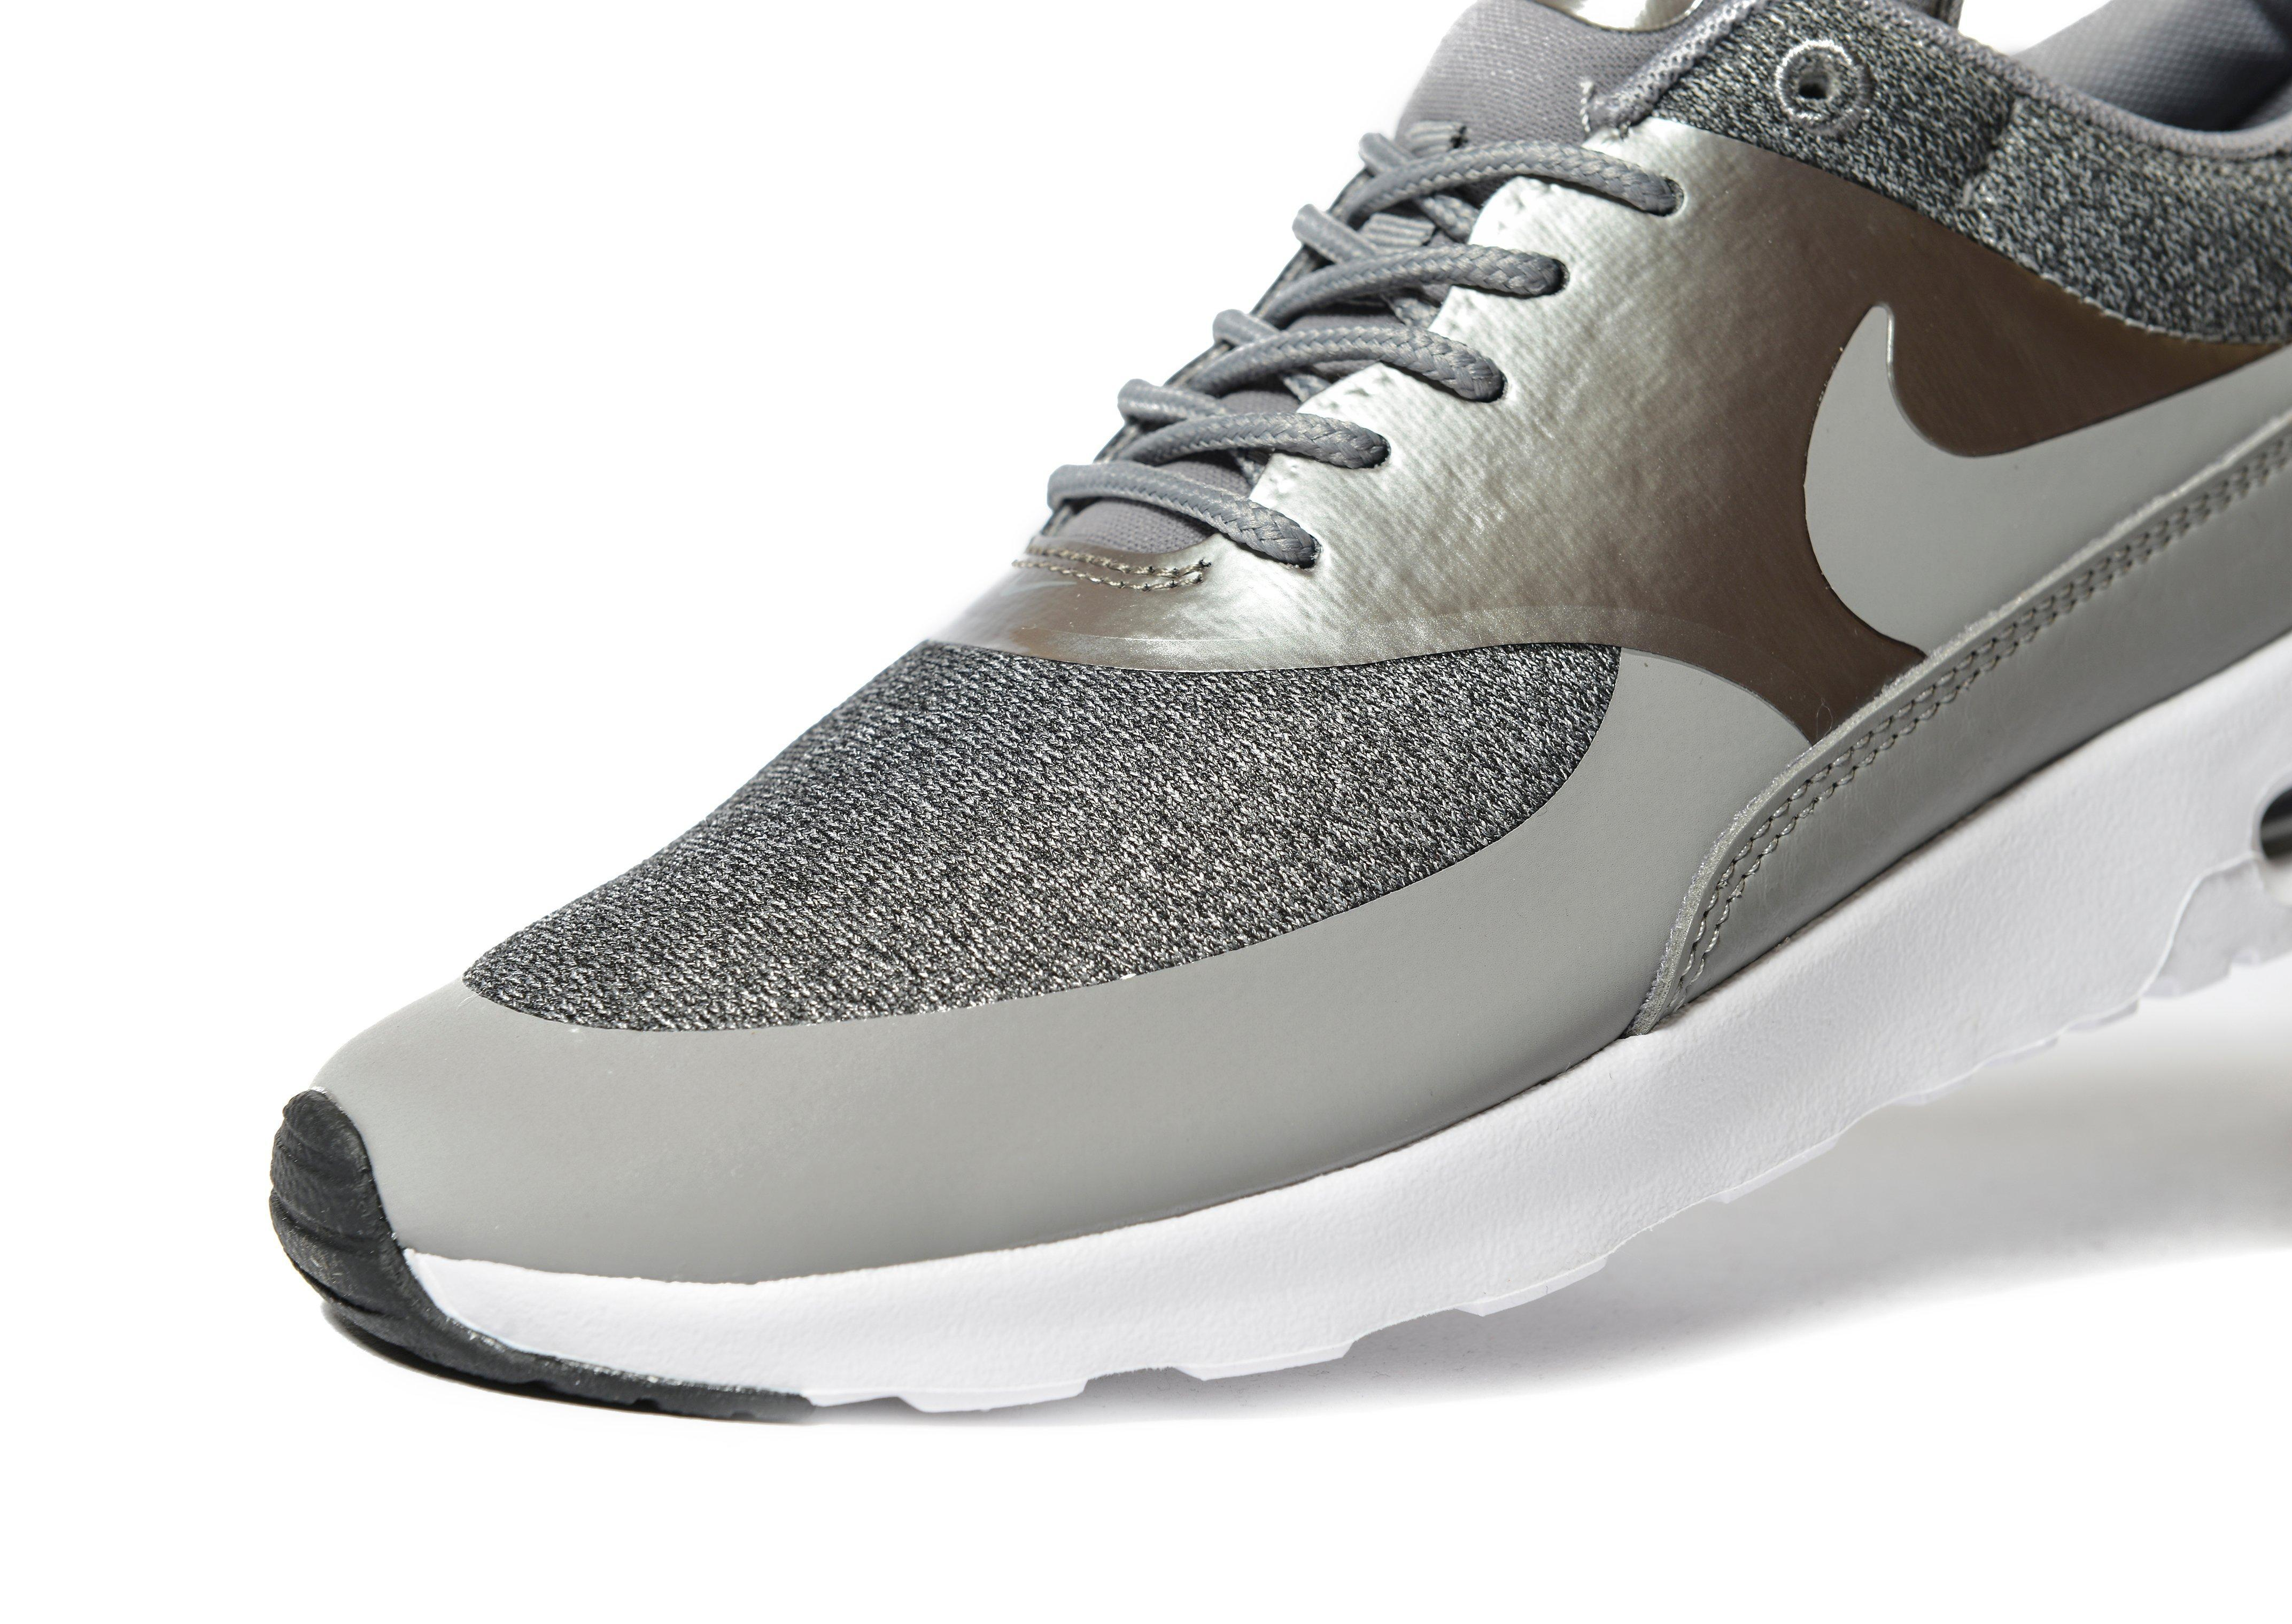 lyst nike air max thea knit in metallic. Black Bedroom Furniture Sets. Home Design Ideas